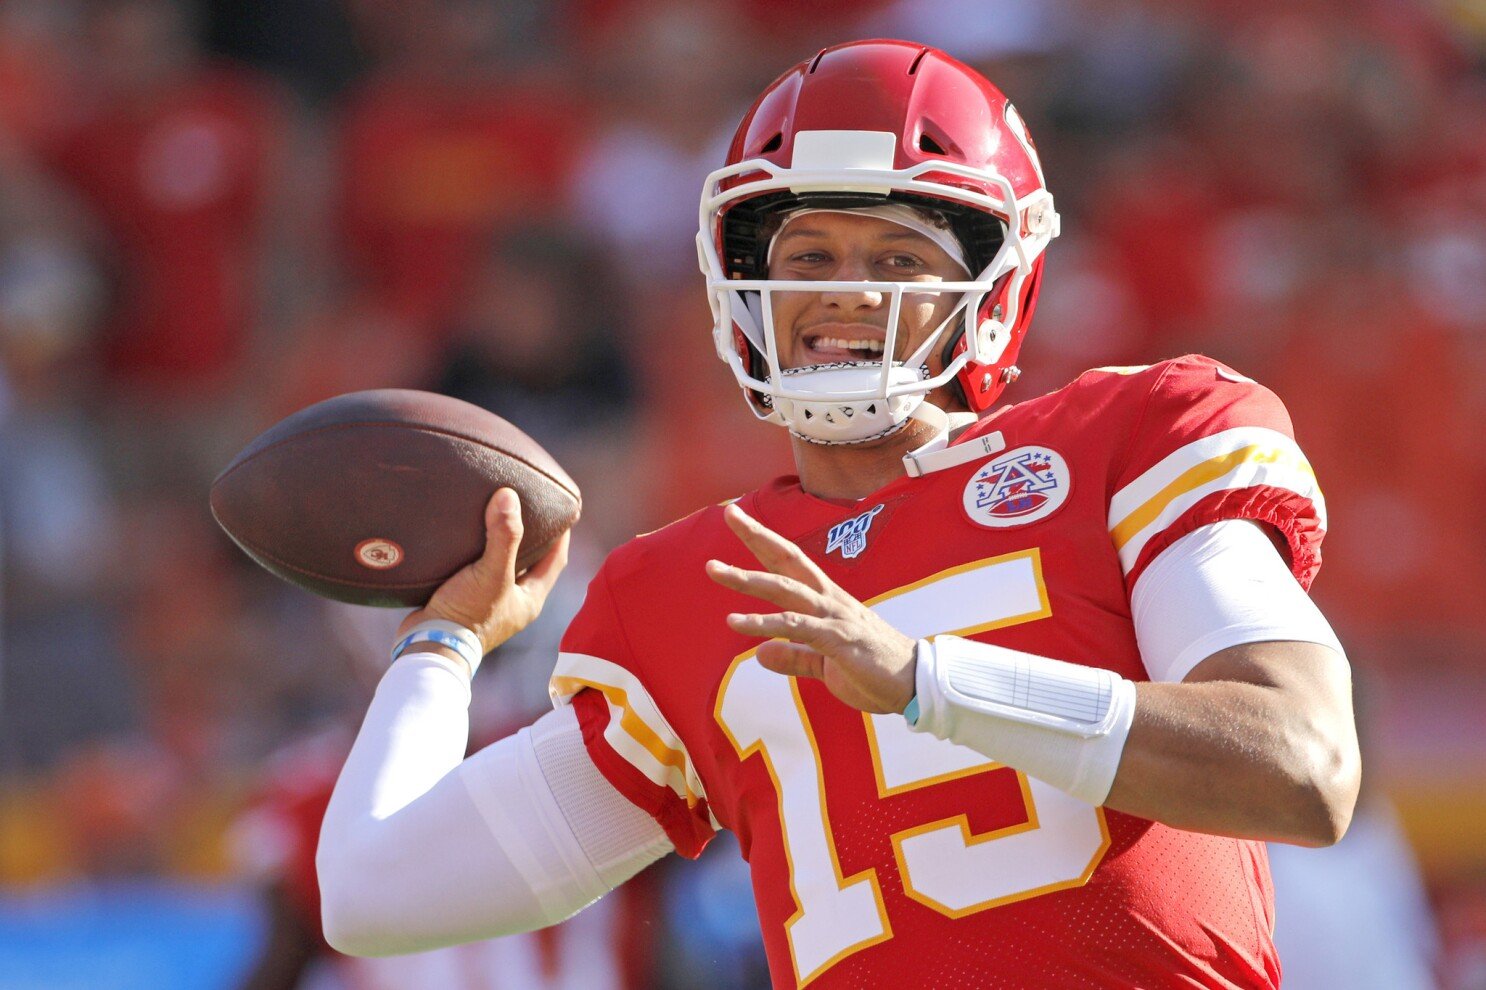 Mahomes sharp as Chiefs rout Bengals in preseason opener - The San